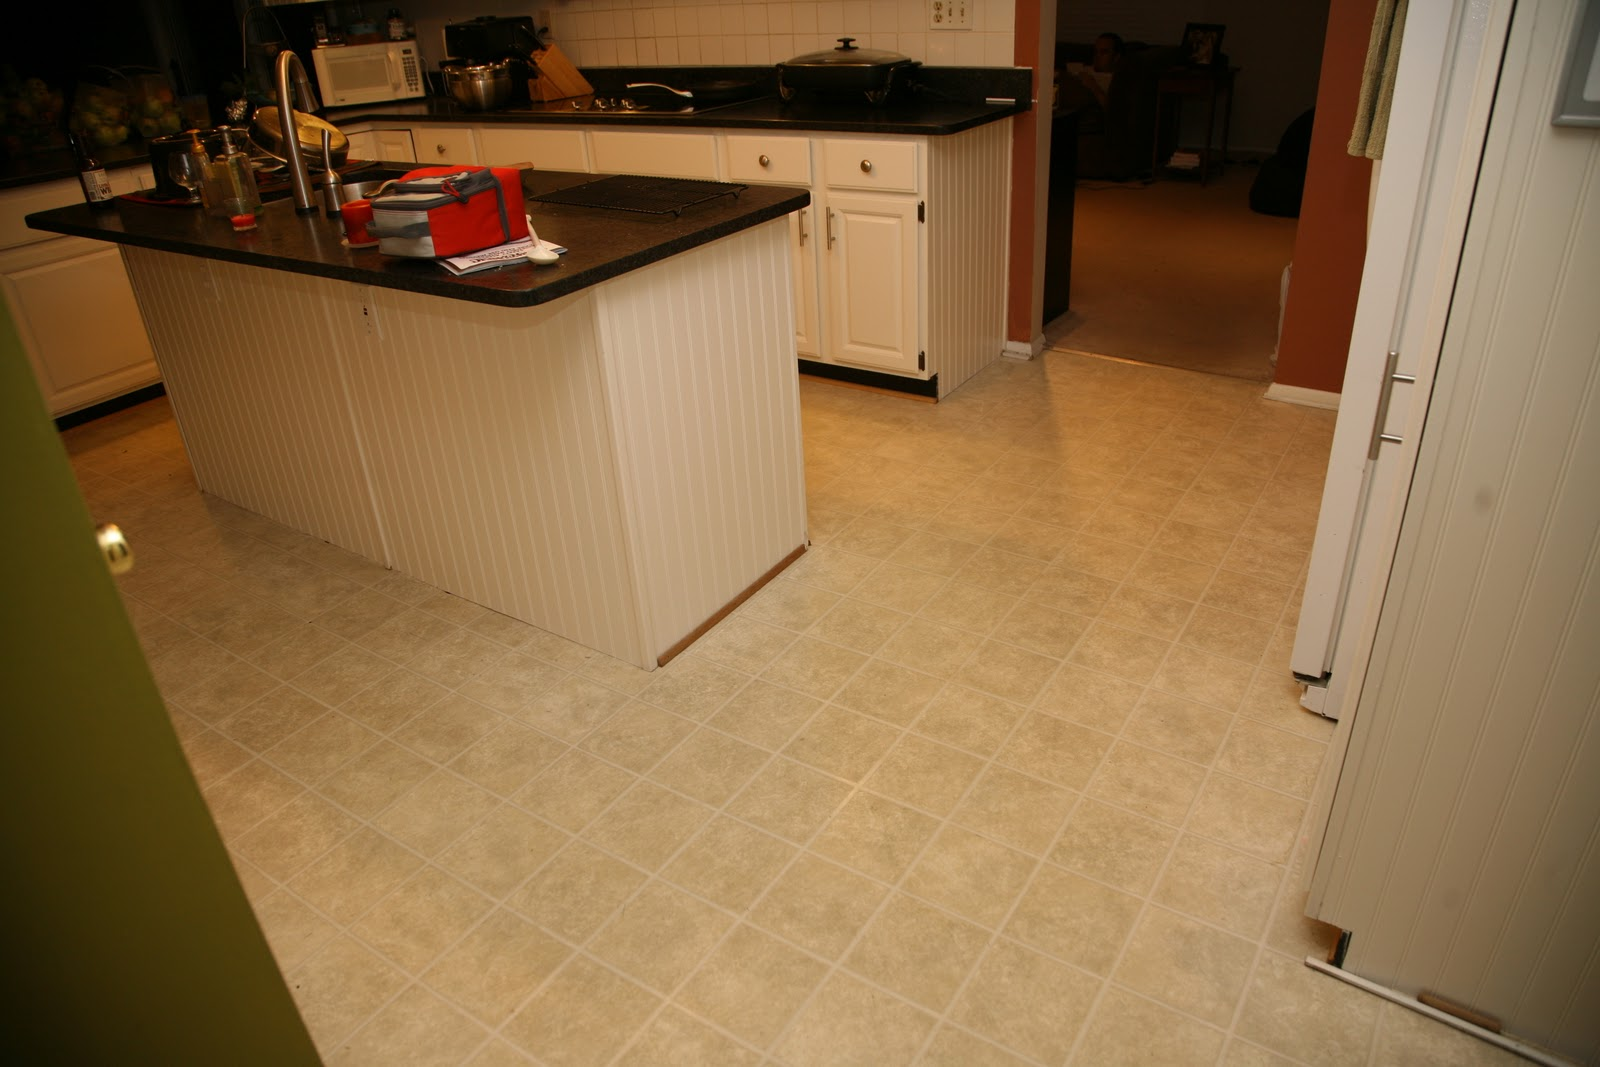 Shutter mug new kitchen floors for Floors tiles for kitchen